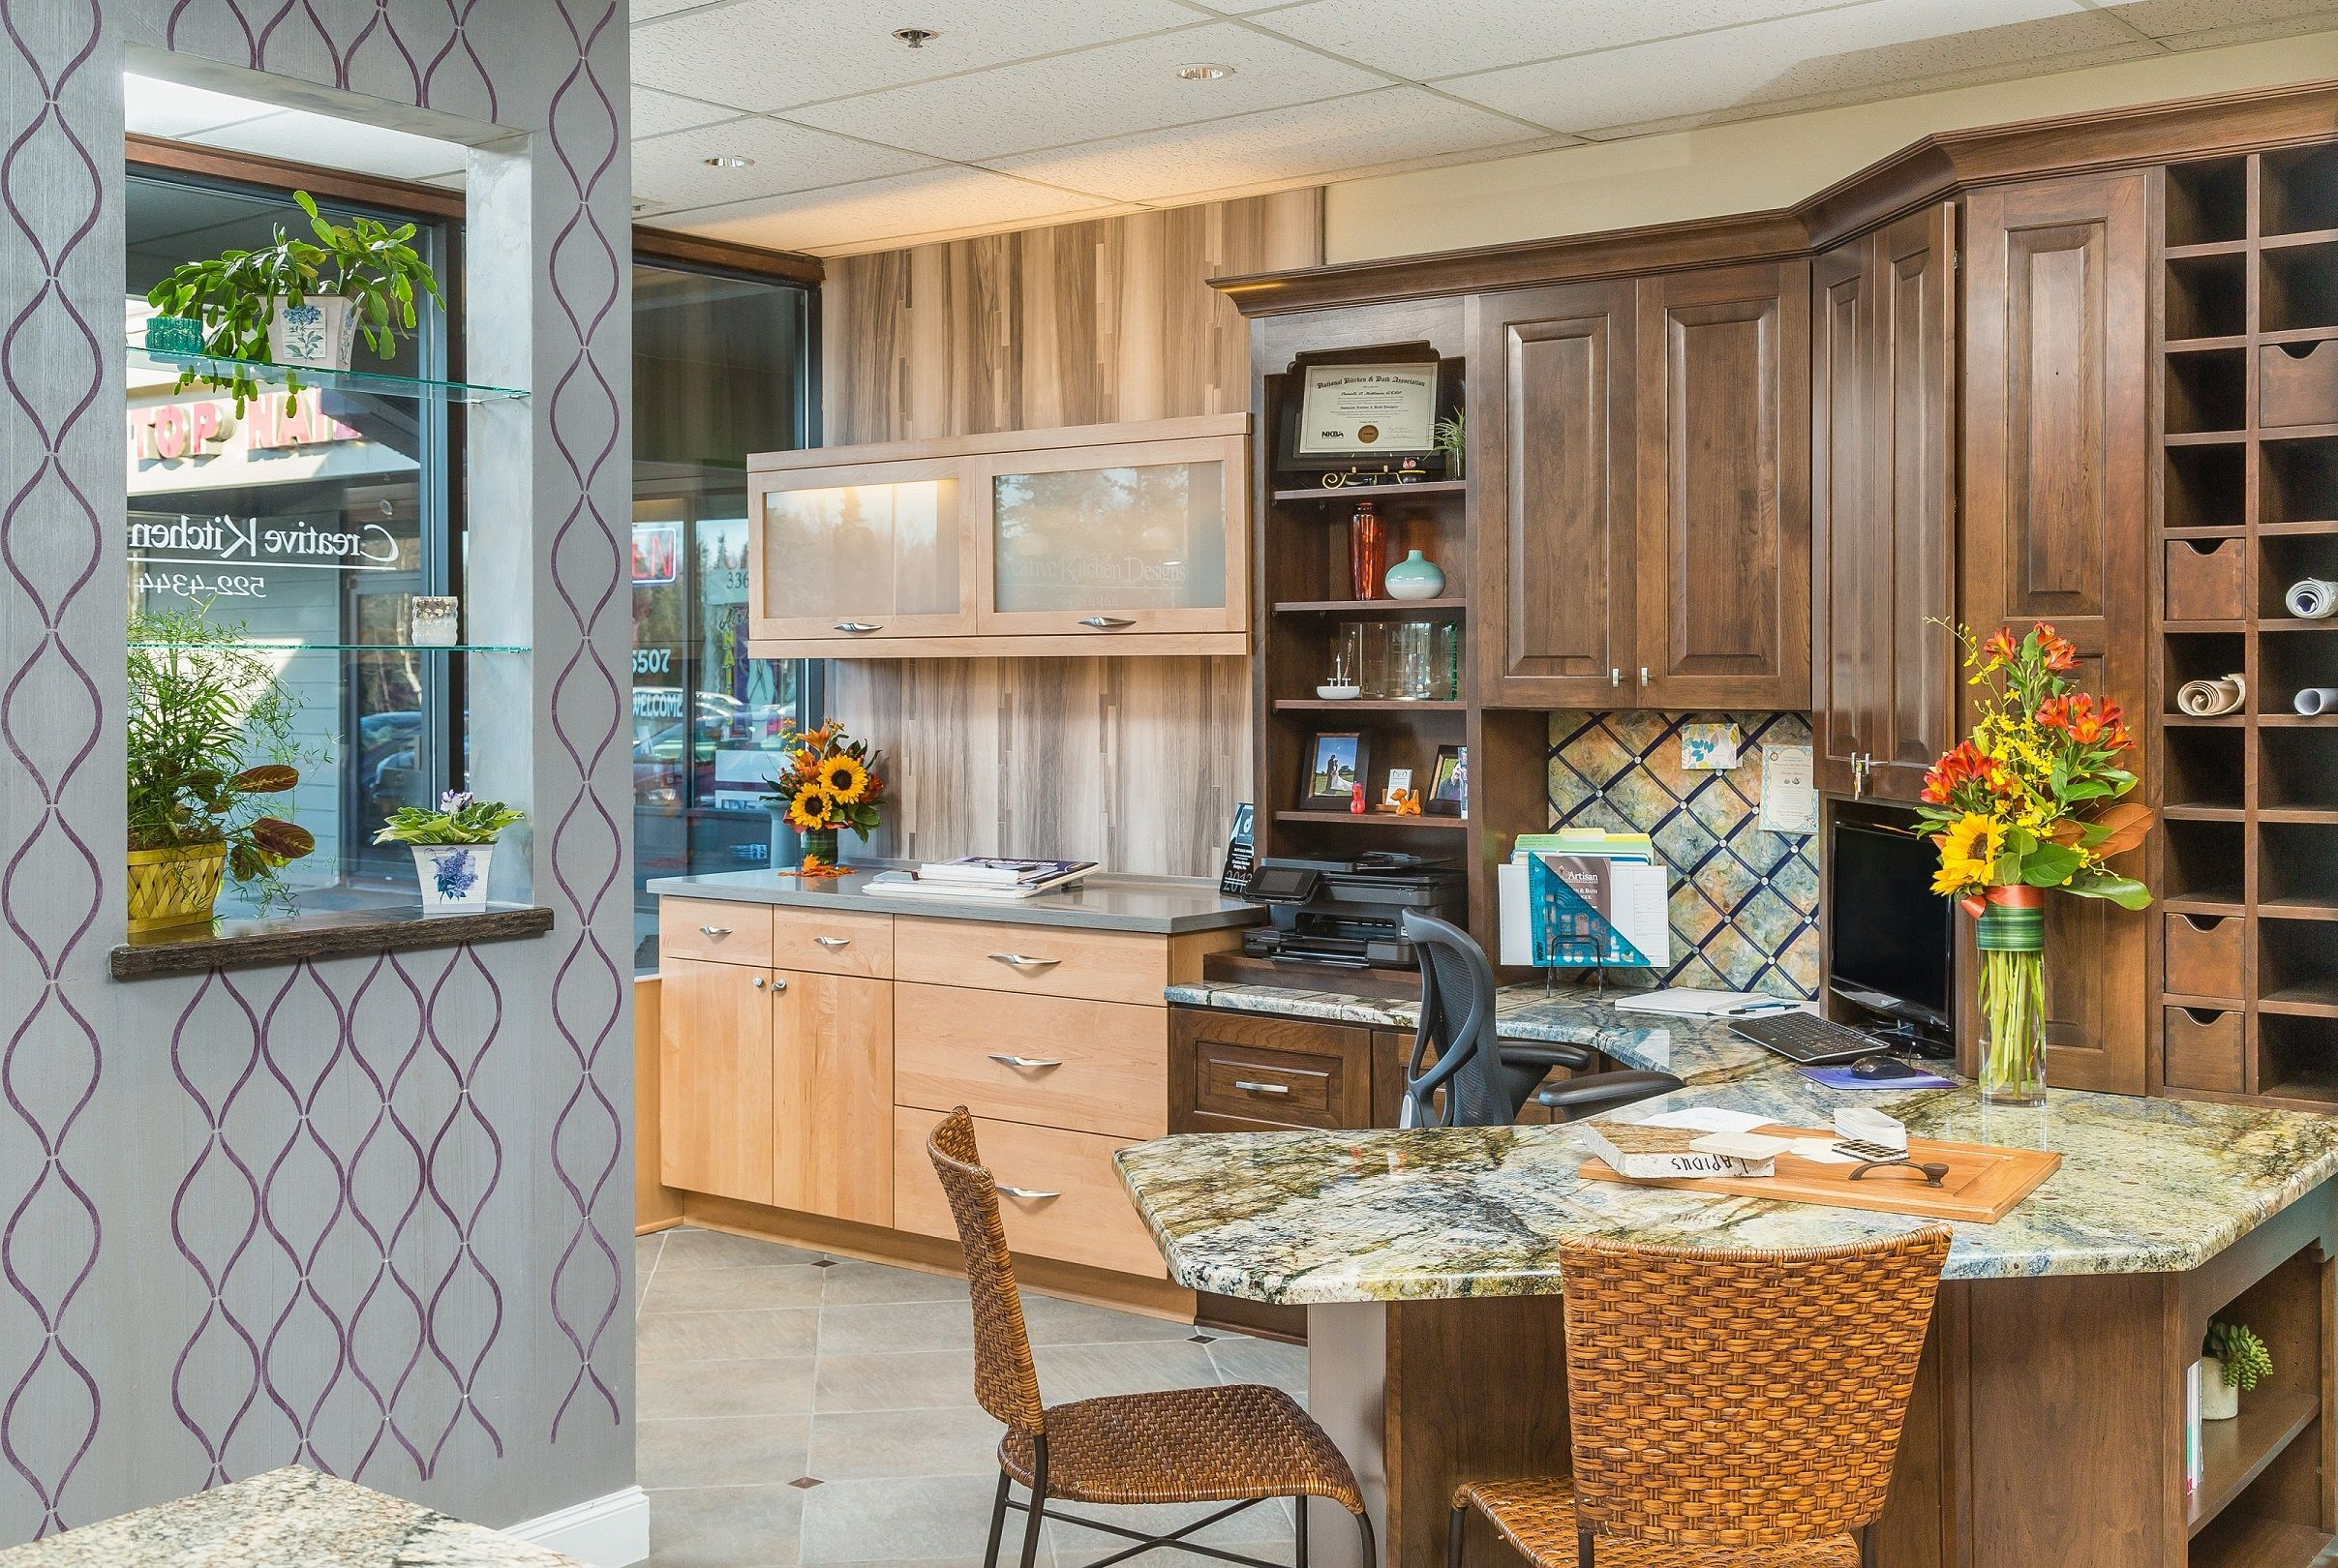 Independent small creative kitchen designs inc for the home